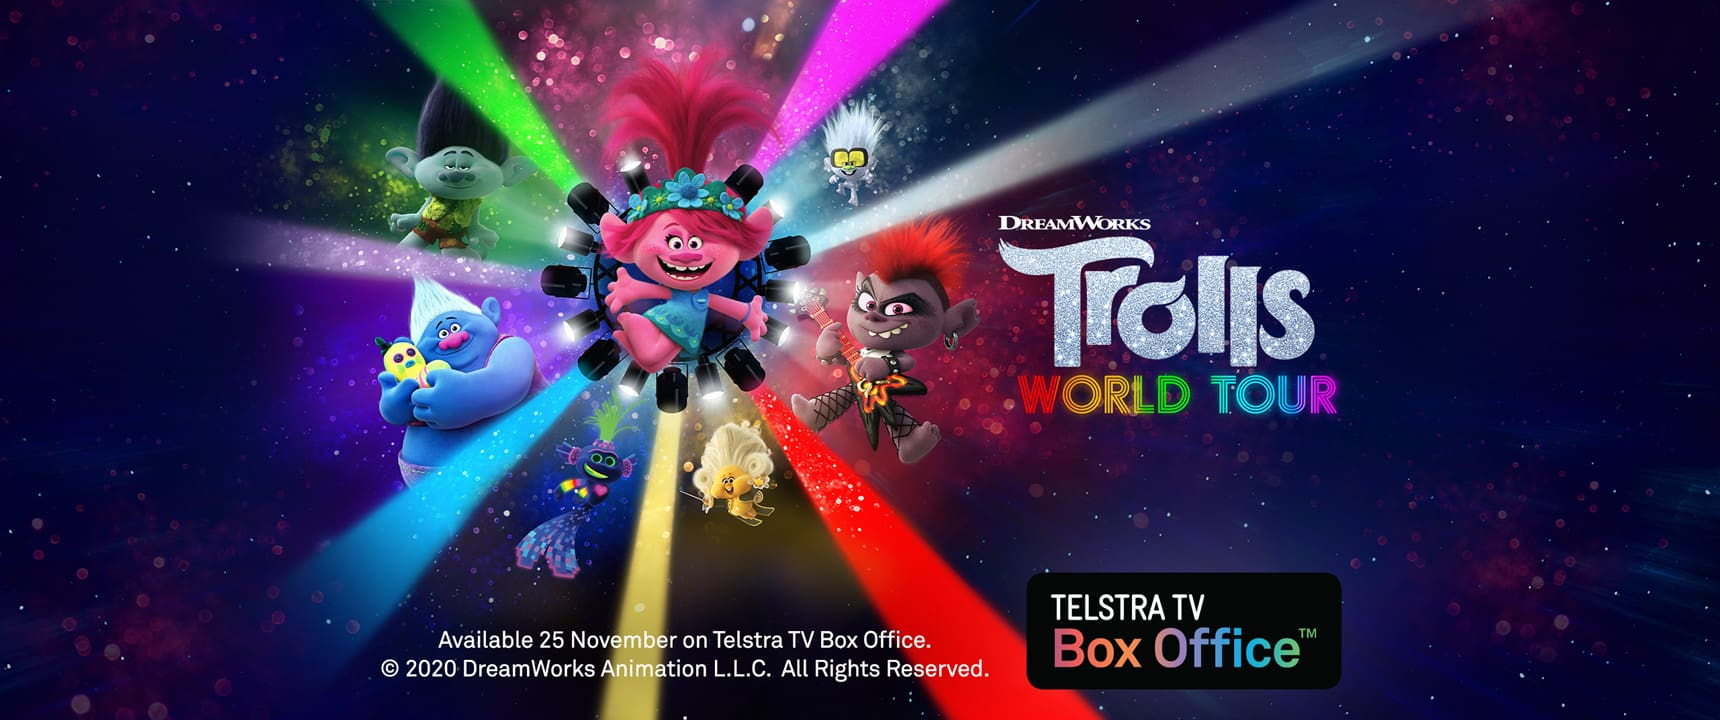 Choose from thousands of blockbusters, new releases and classics - from comedy to drama to horror and more - with Telstra TV Box Office.